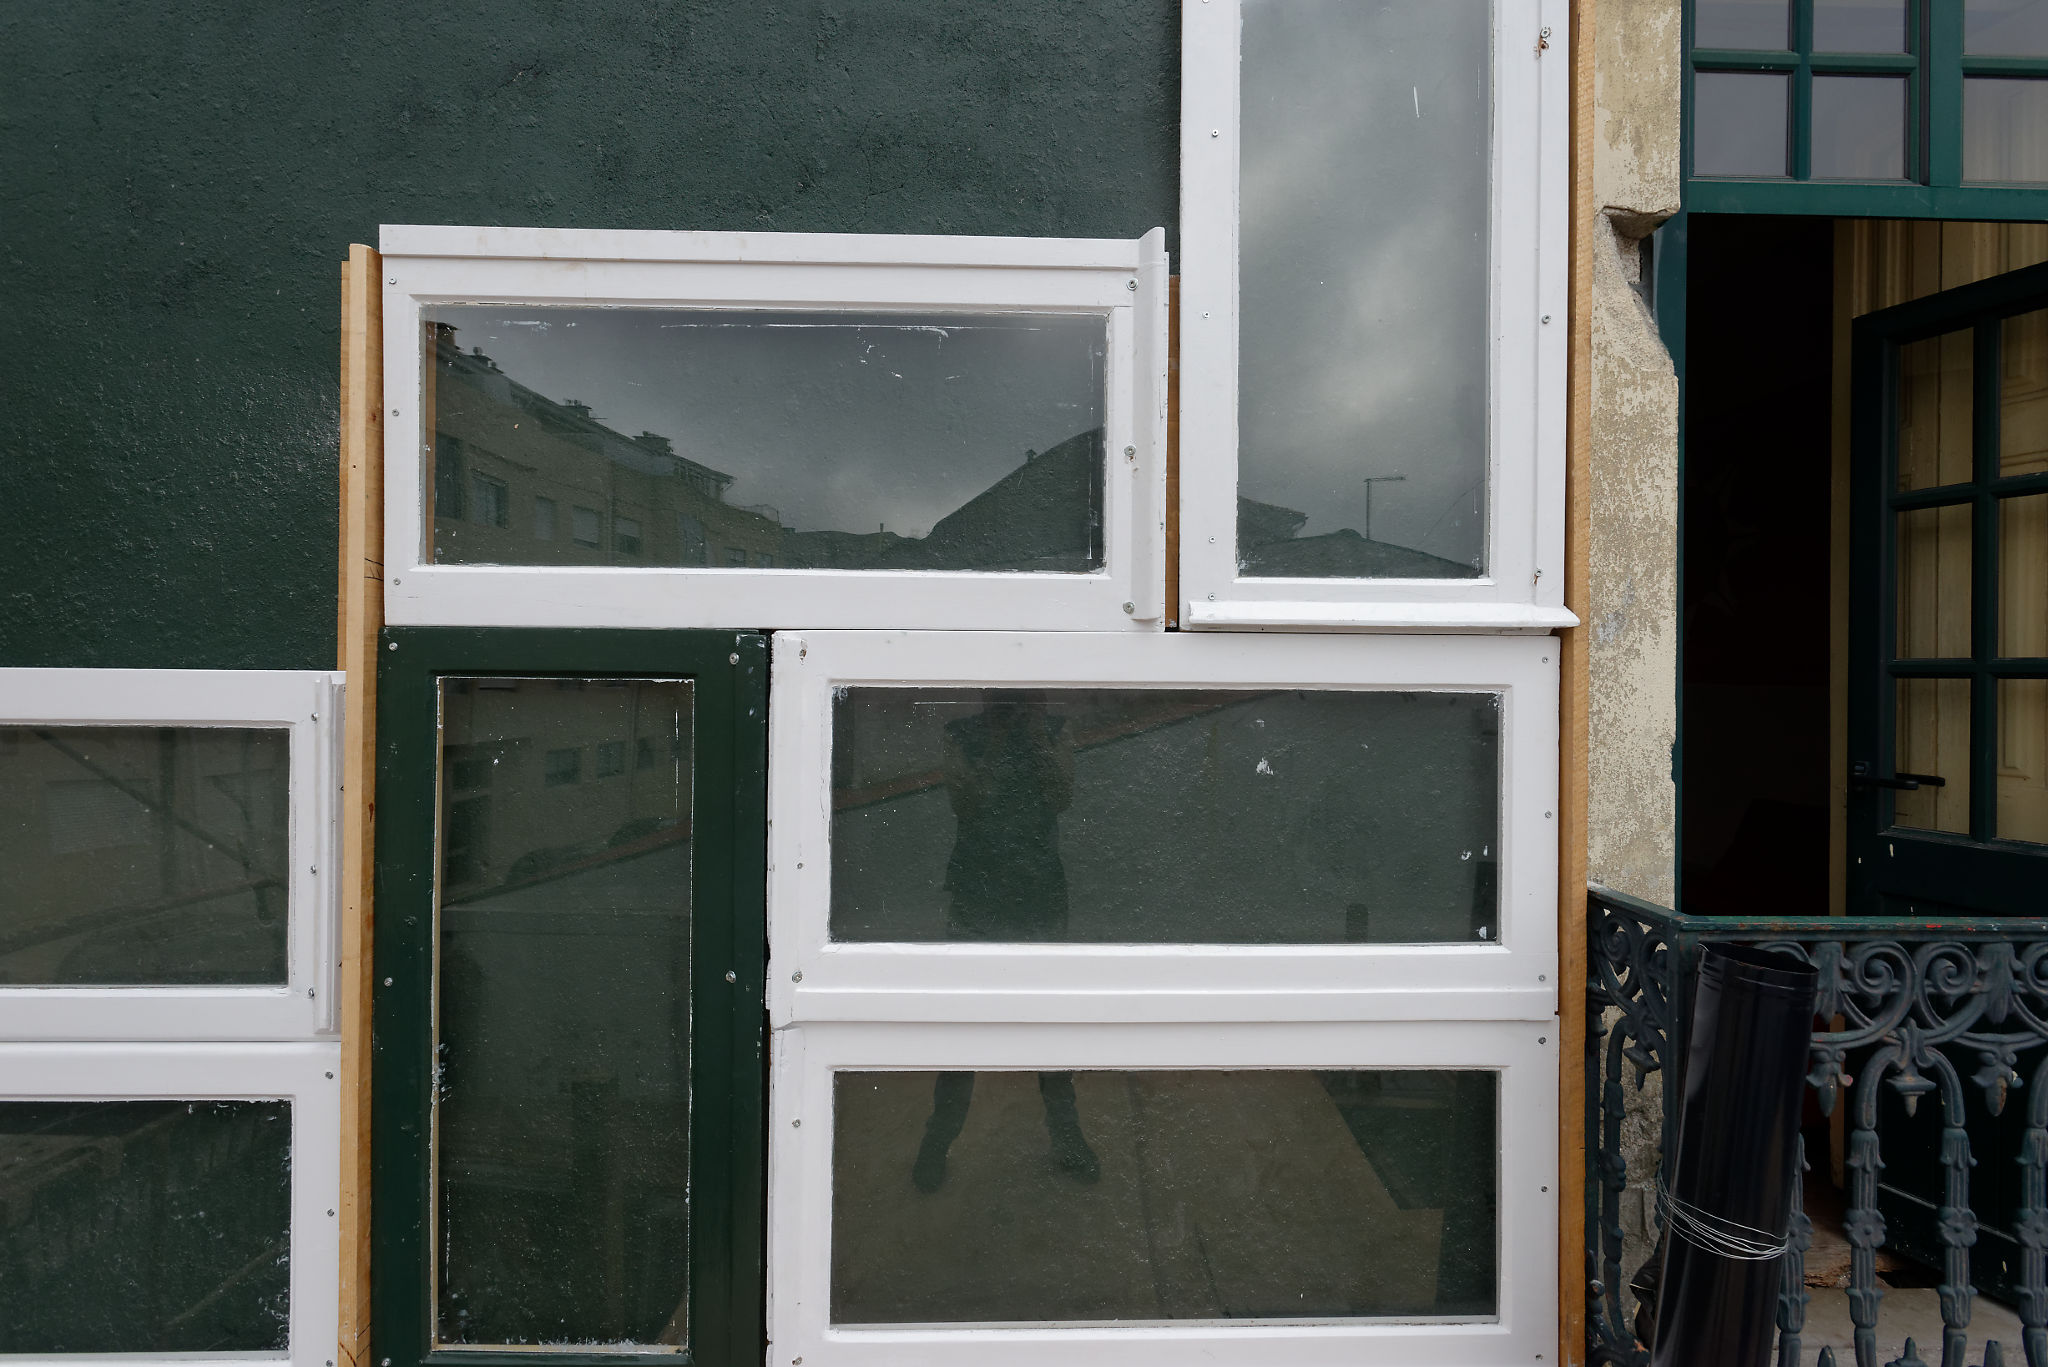 recycled window facade